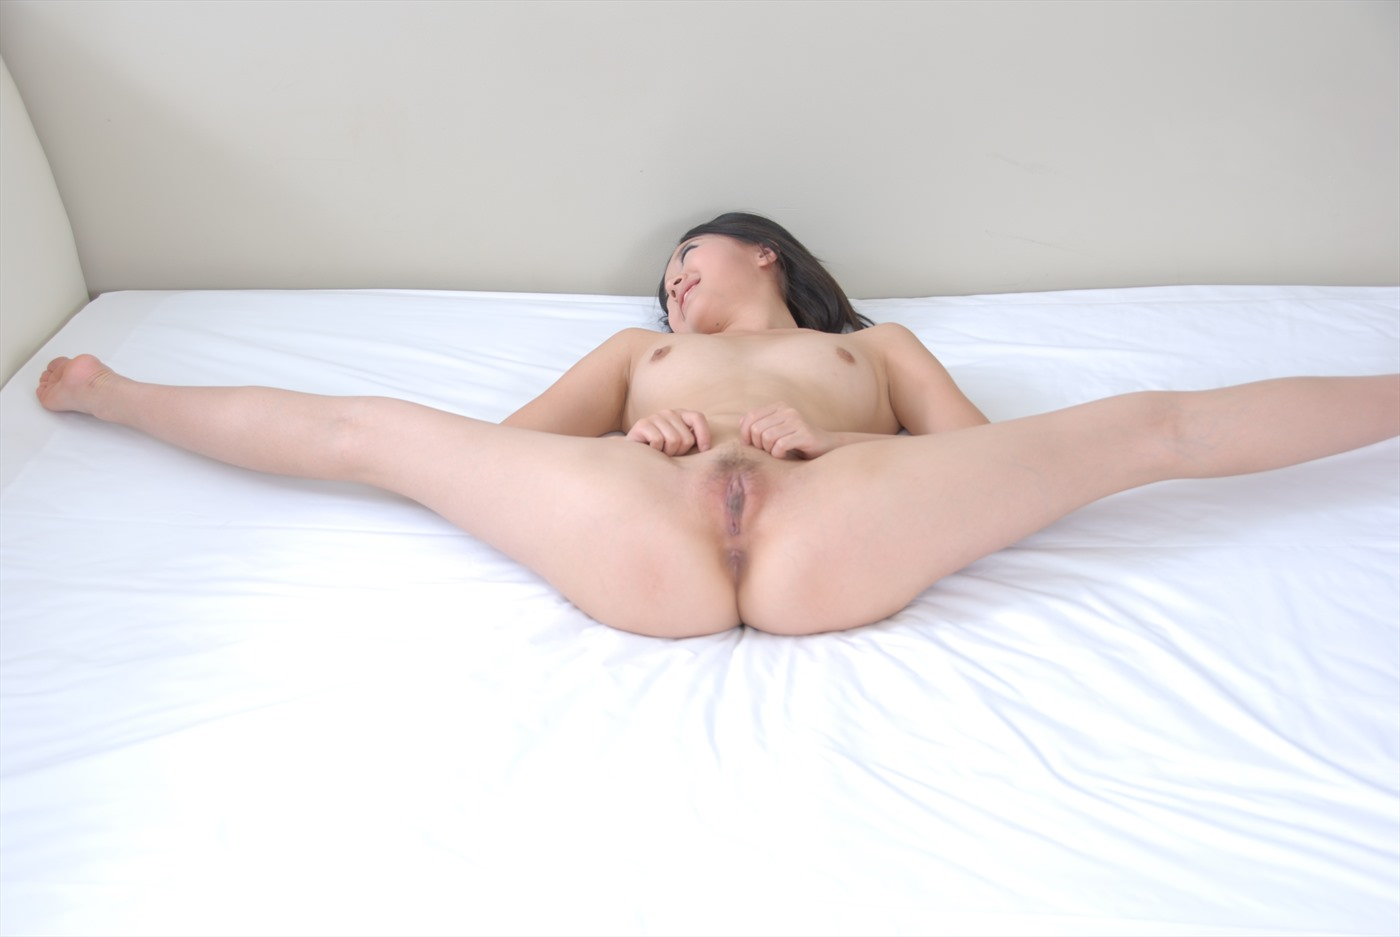 Wife in nude play